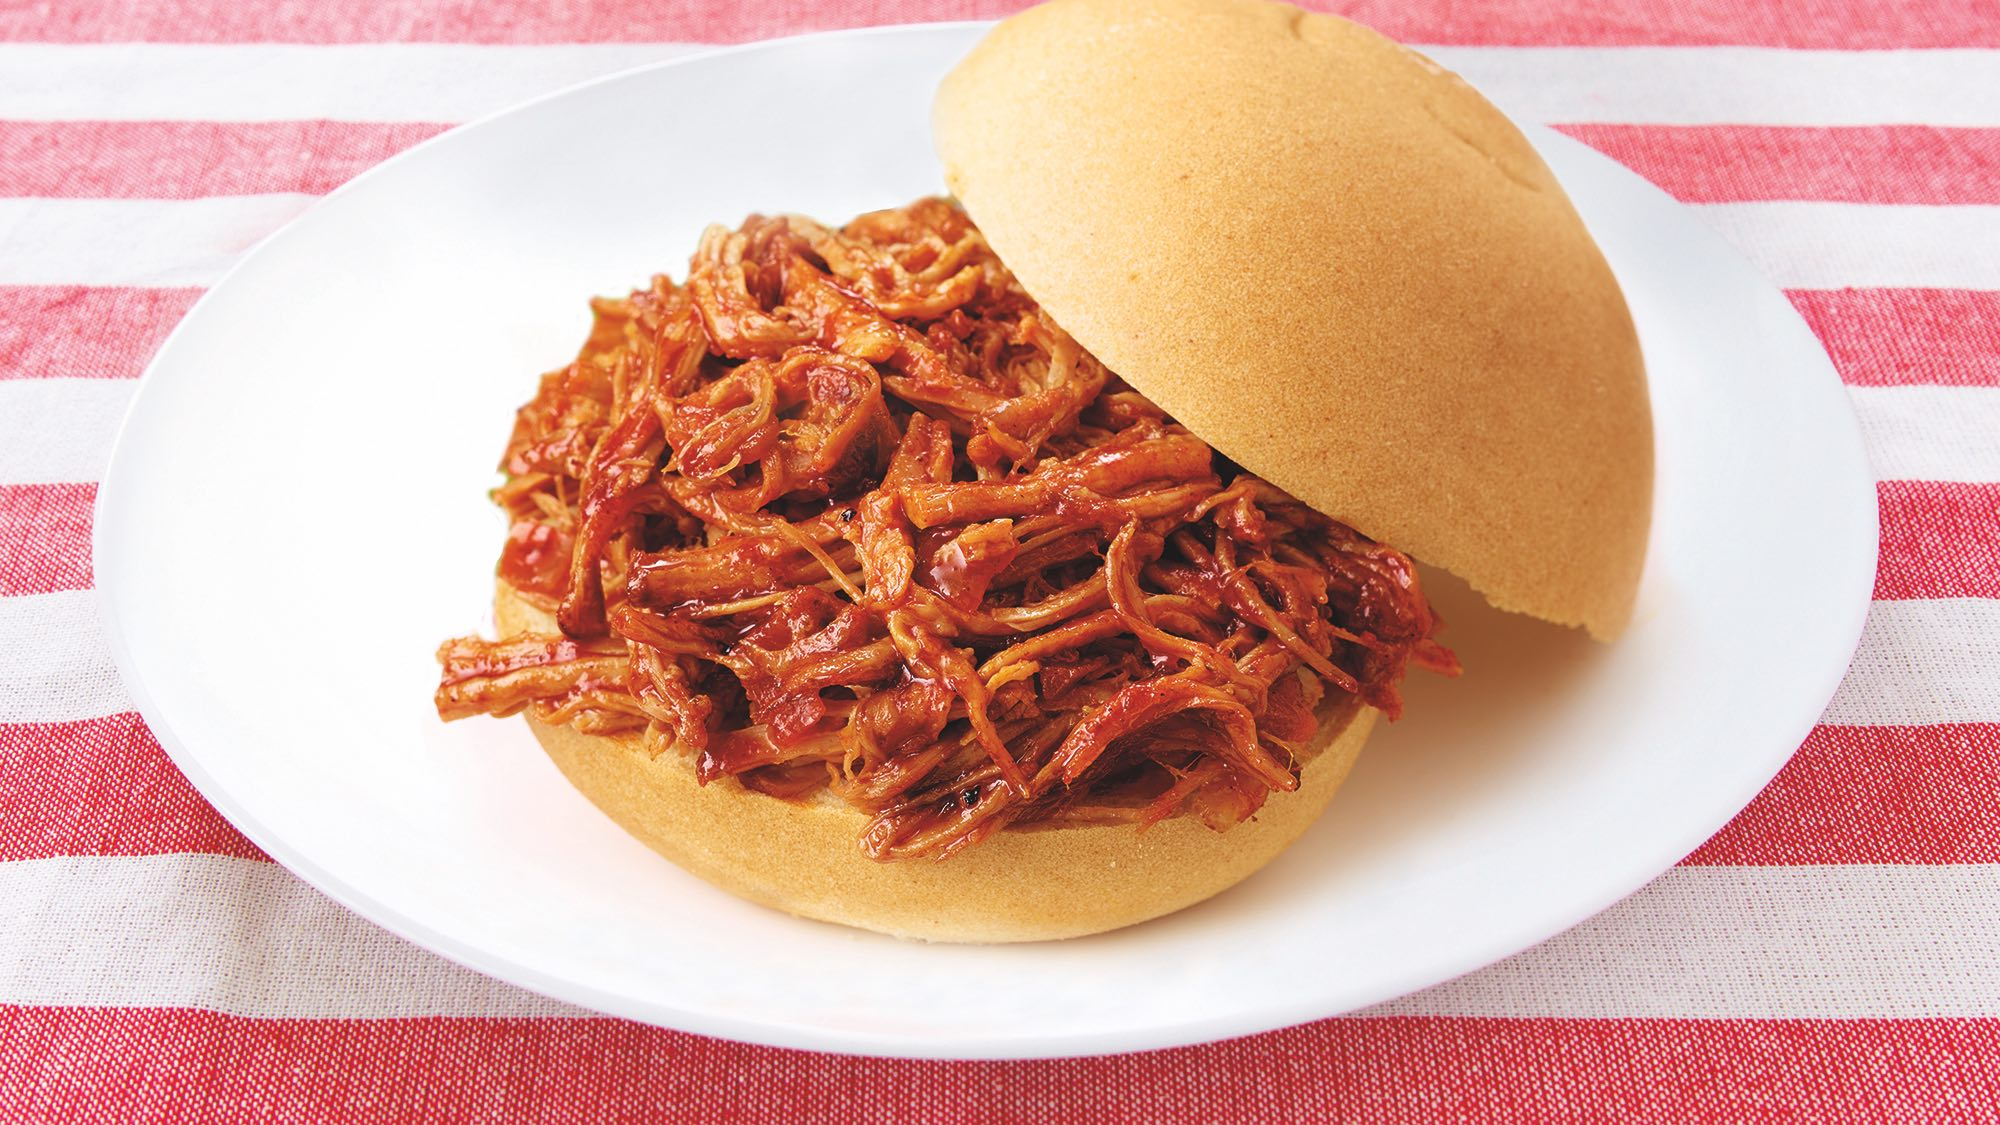 McCormick Slow Cooker Smoky Bourbon BBQ Pulled Pork